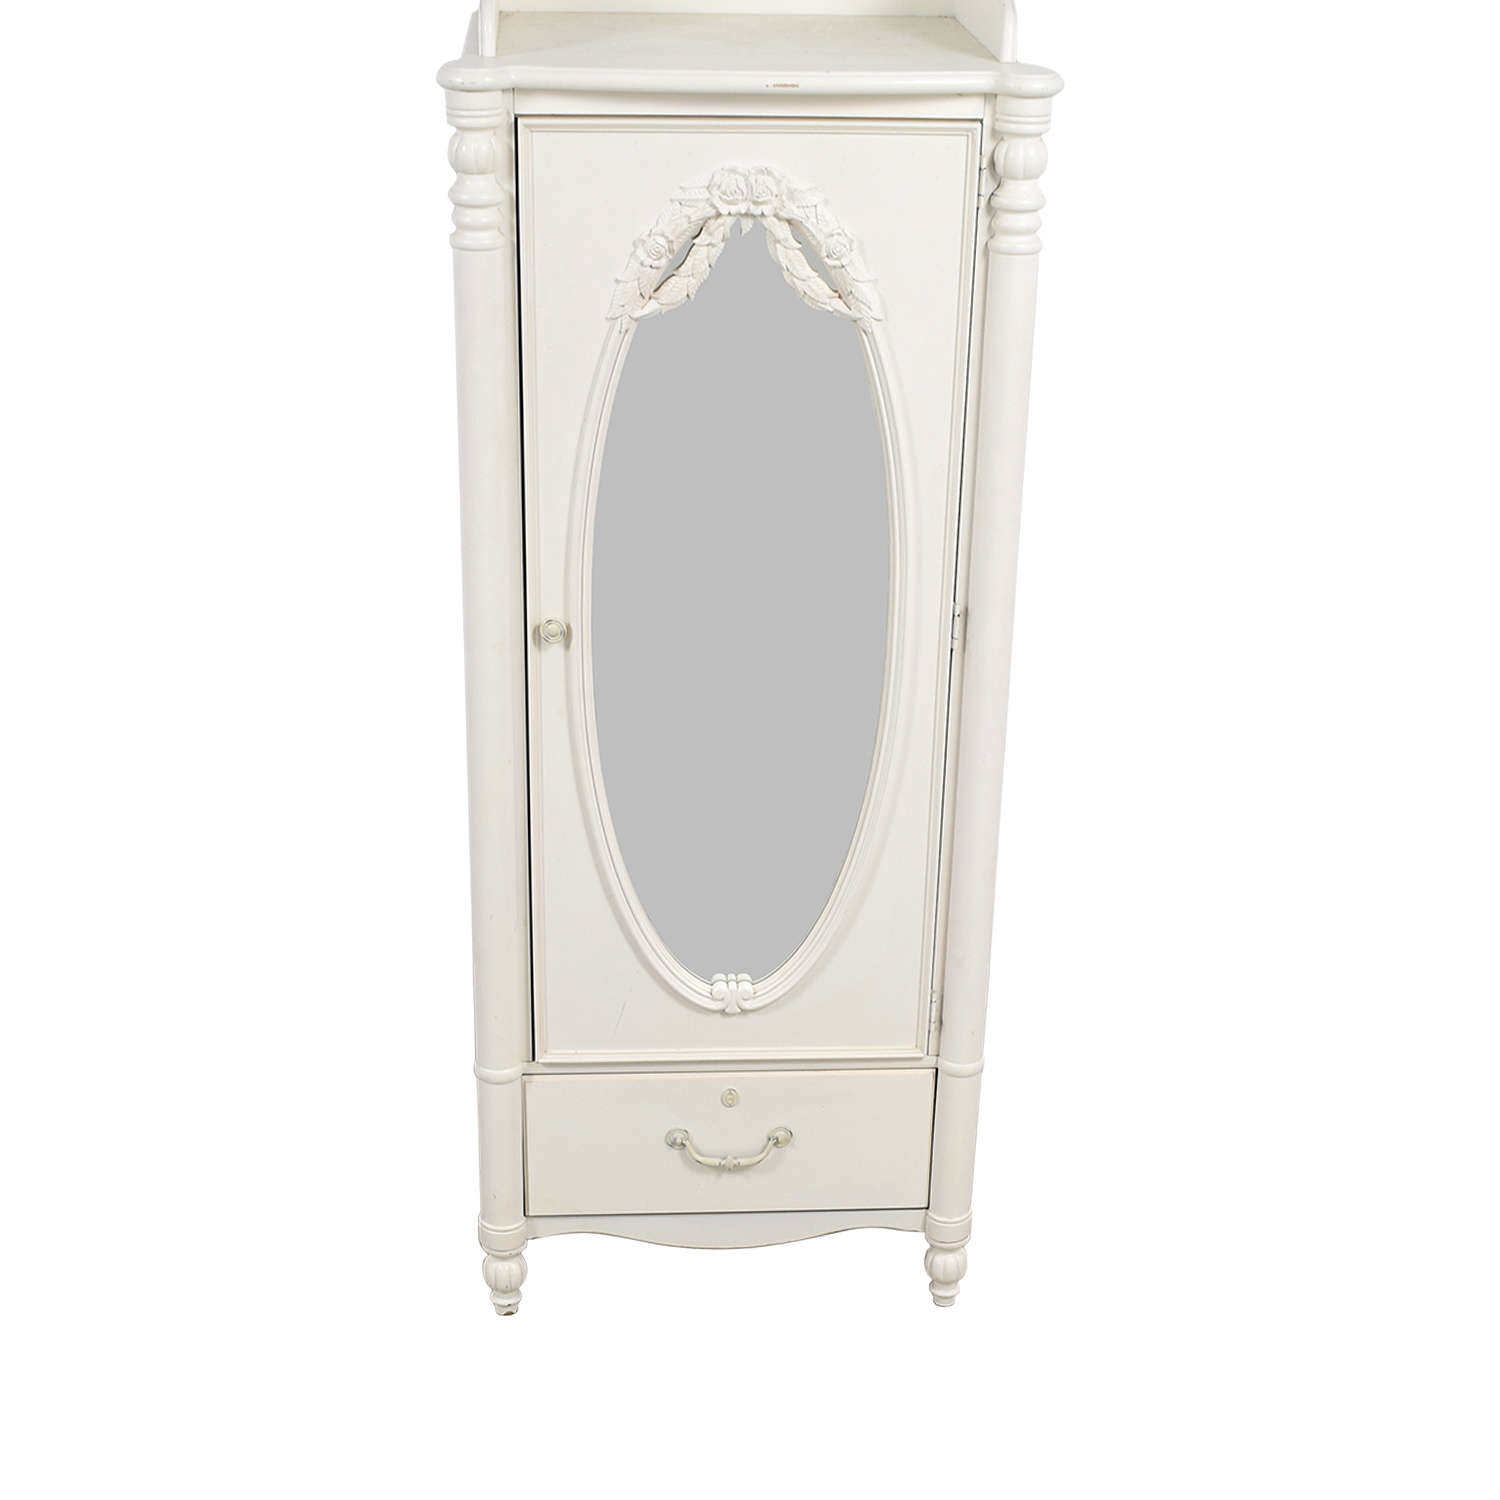 Stanley Home Furniture Stanley Home Furniture White Armoire with Exterior Mirror dimensions